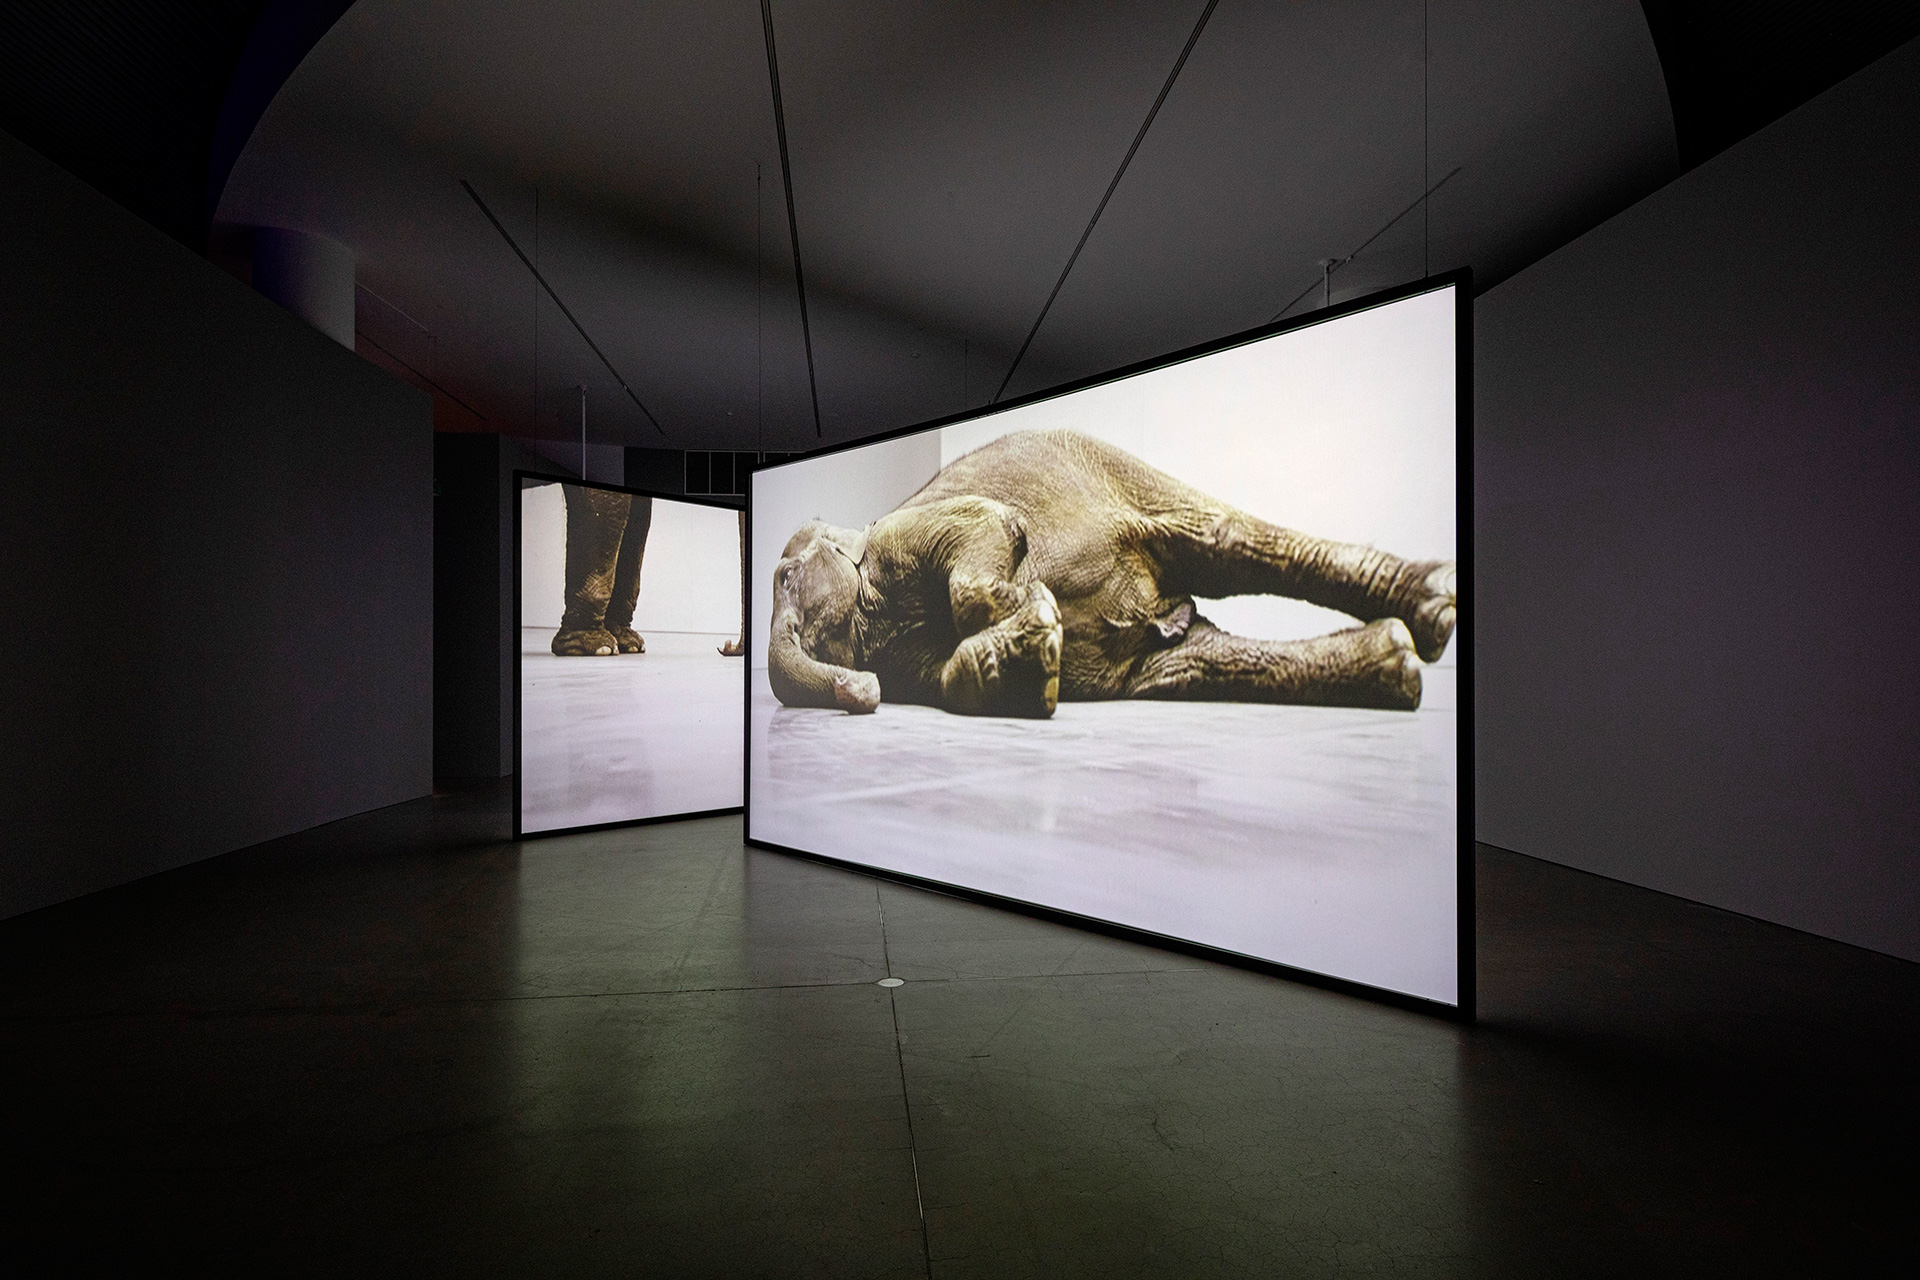 Douglas Gordon, Play Dead; real time, 2003, 3 channel video installation, installation view 3, blood, sweat, tears, DOX Centre for Contemporary Art, 2009 © Studio lost but found / VG Bild-Kunst, Bonn, 2019, Photo Studio lost but found / Frederik Pedersen; Courtesy Studio lost but found, Berlin | In My Shadow| Douglas Gordon | STIRworld